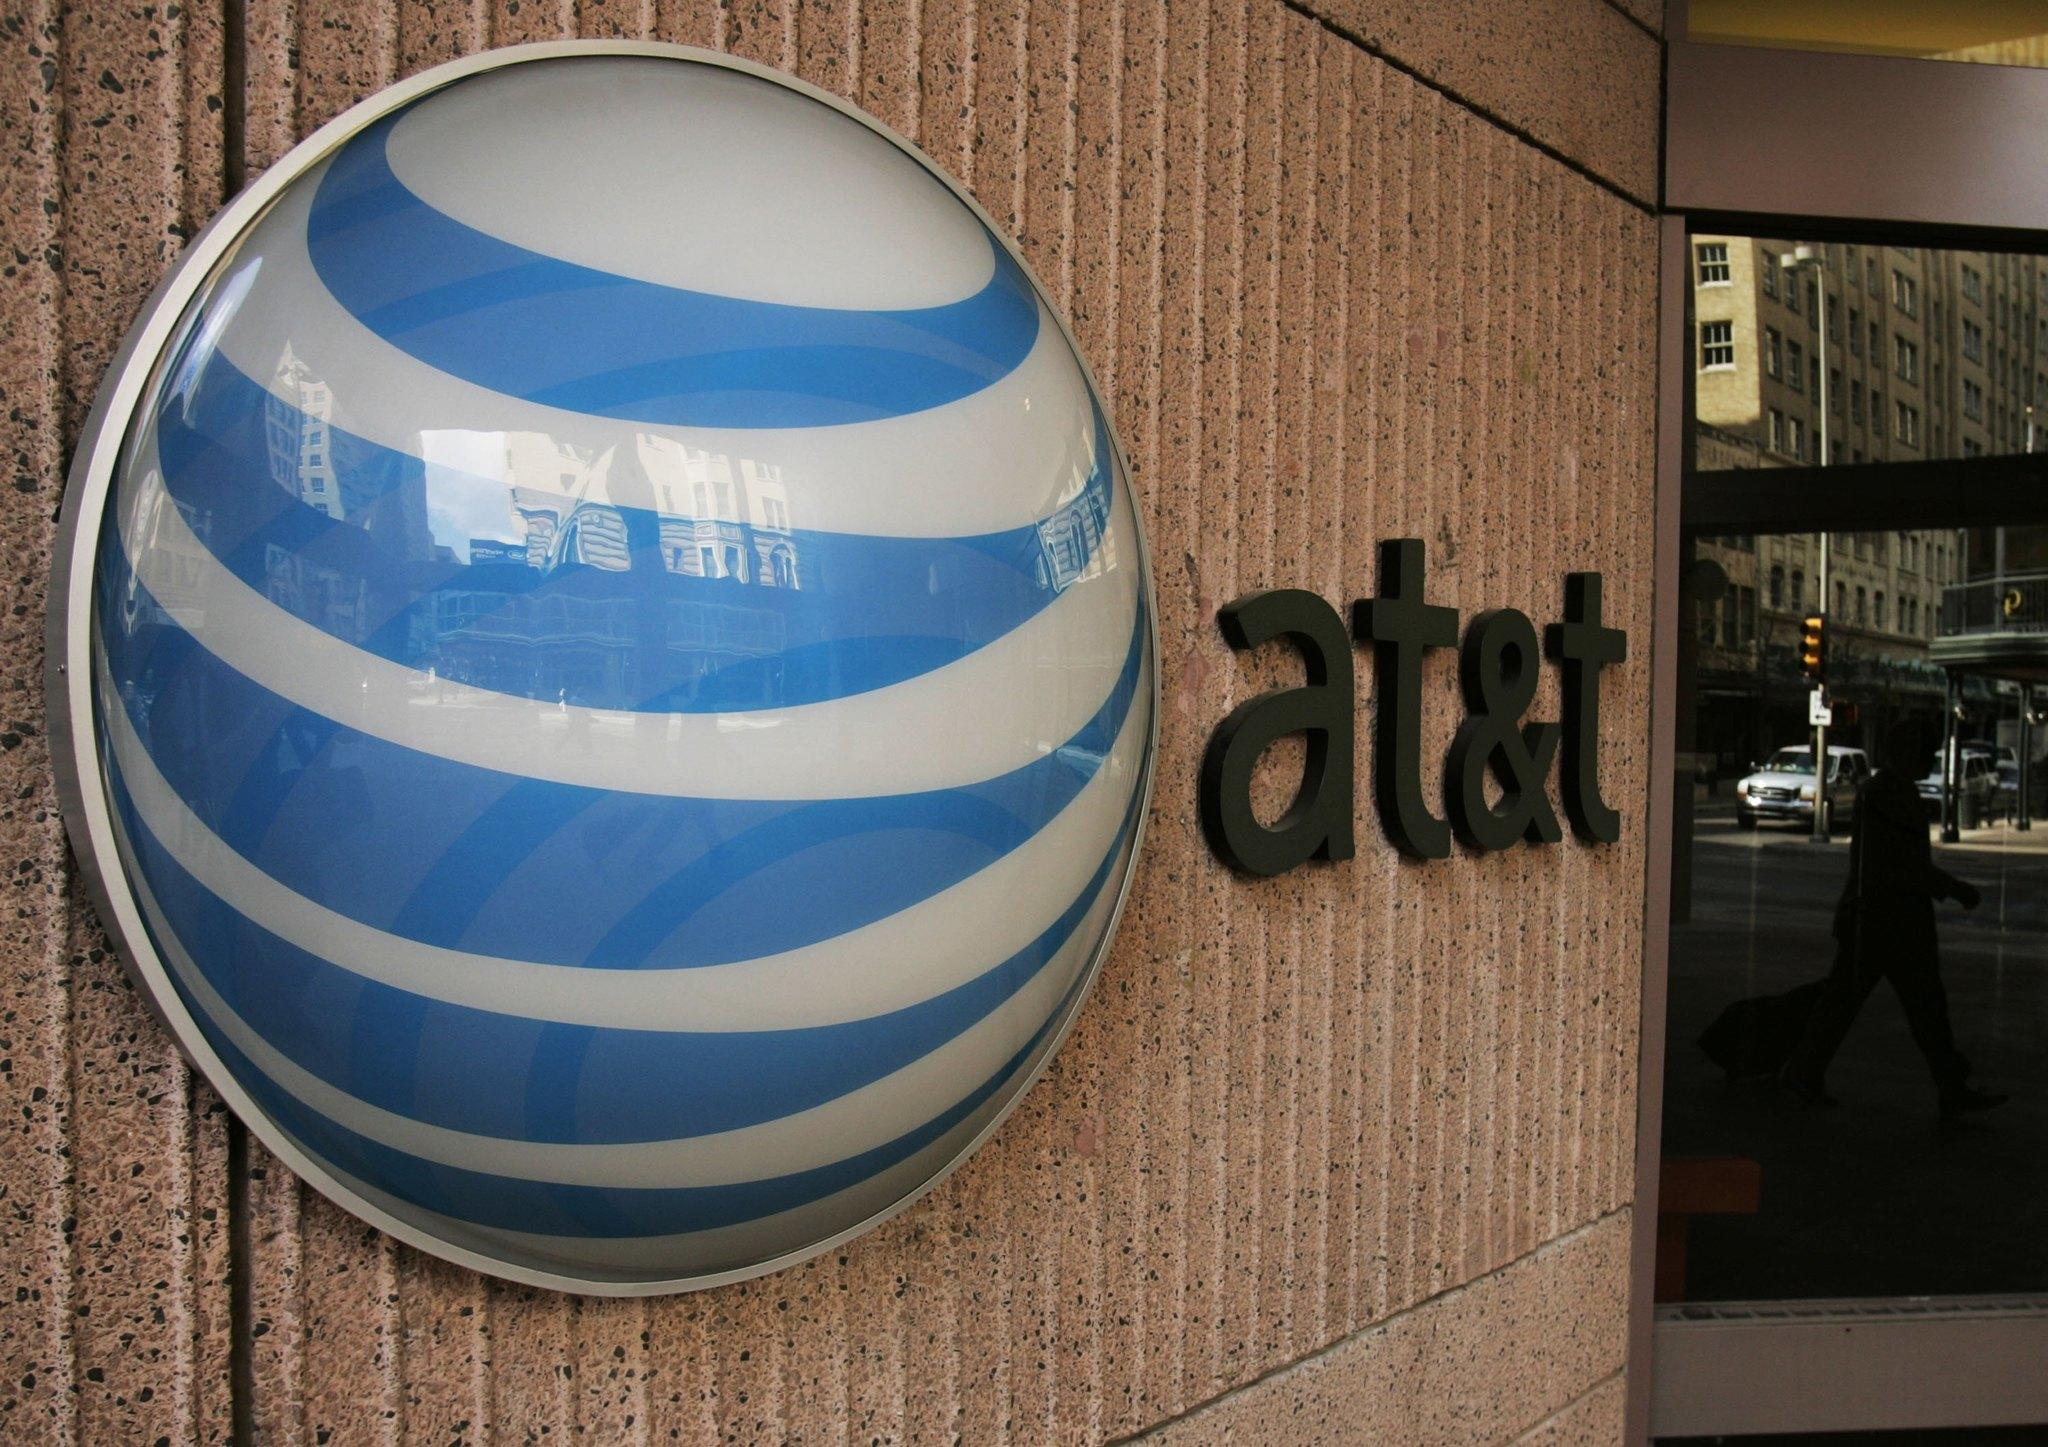 A phone company such as AT&T has to run high-capacity fiber optic cables all the way to its customers' homes to reach gigabit speeds, but that requires a huge investment with an uncertain return.